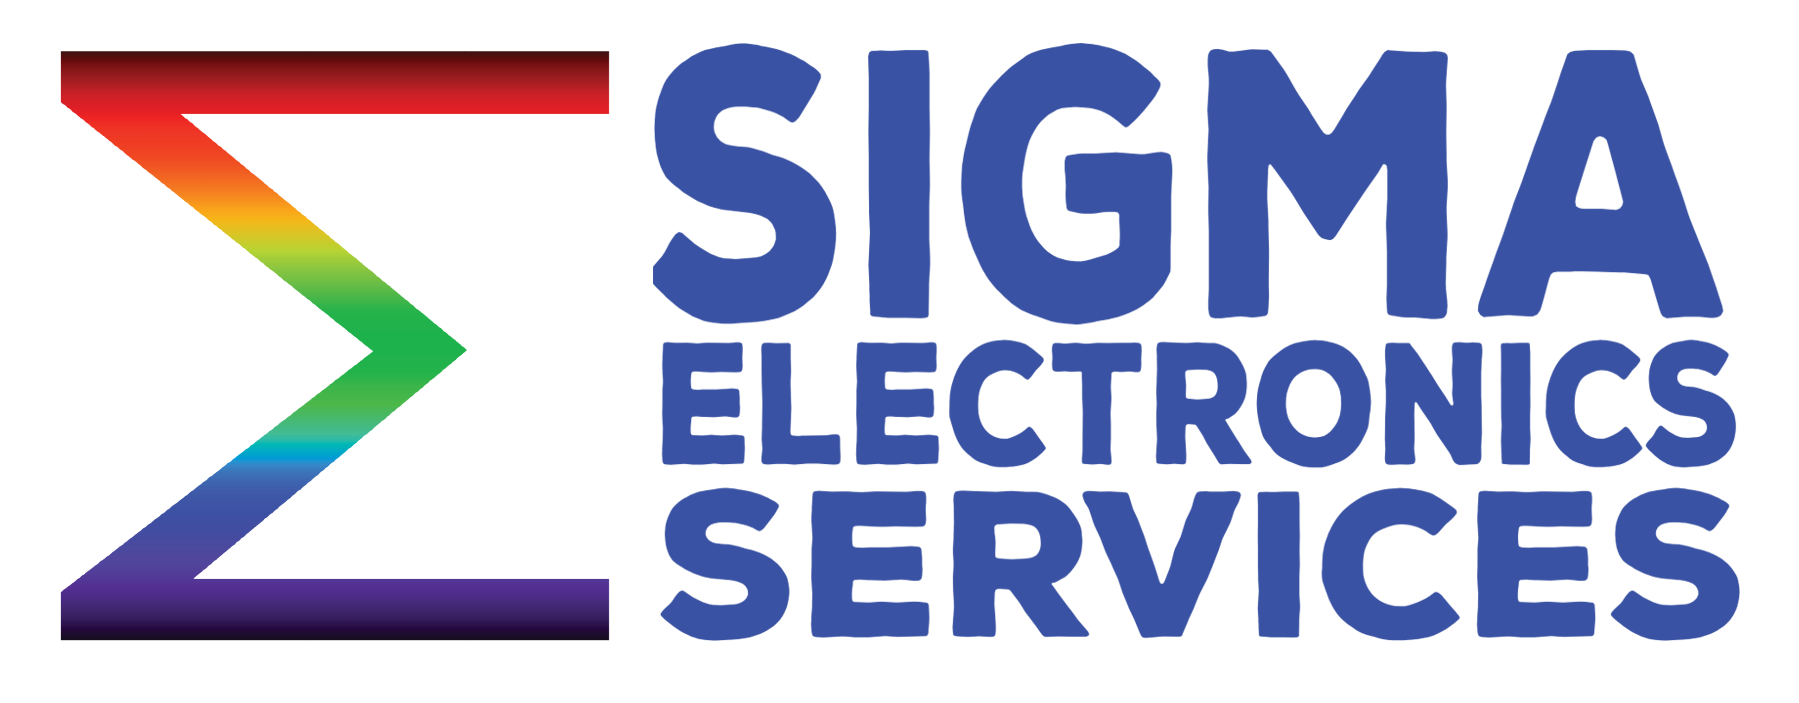 Sigma Electronics Services | Edmonton Consumer Electronics and Industrial Repair